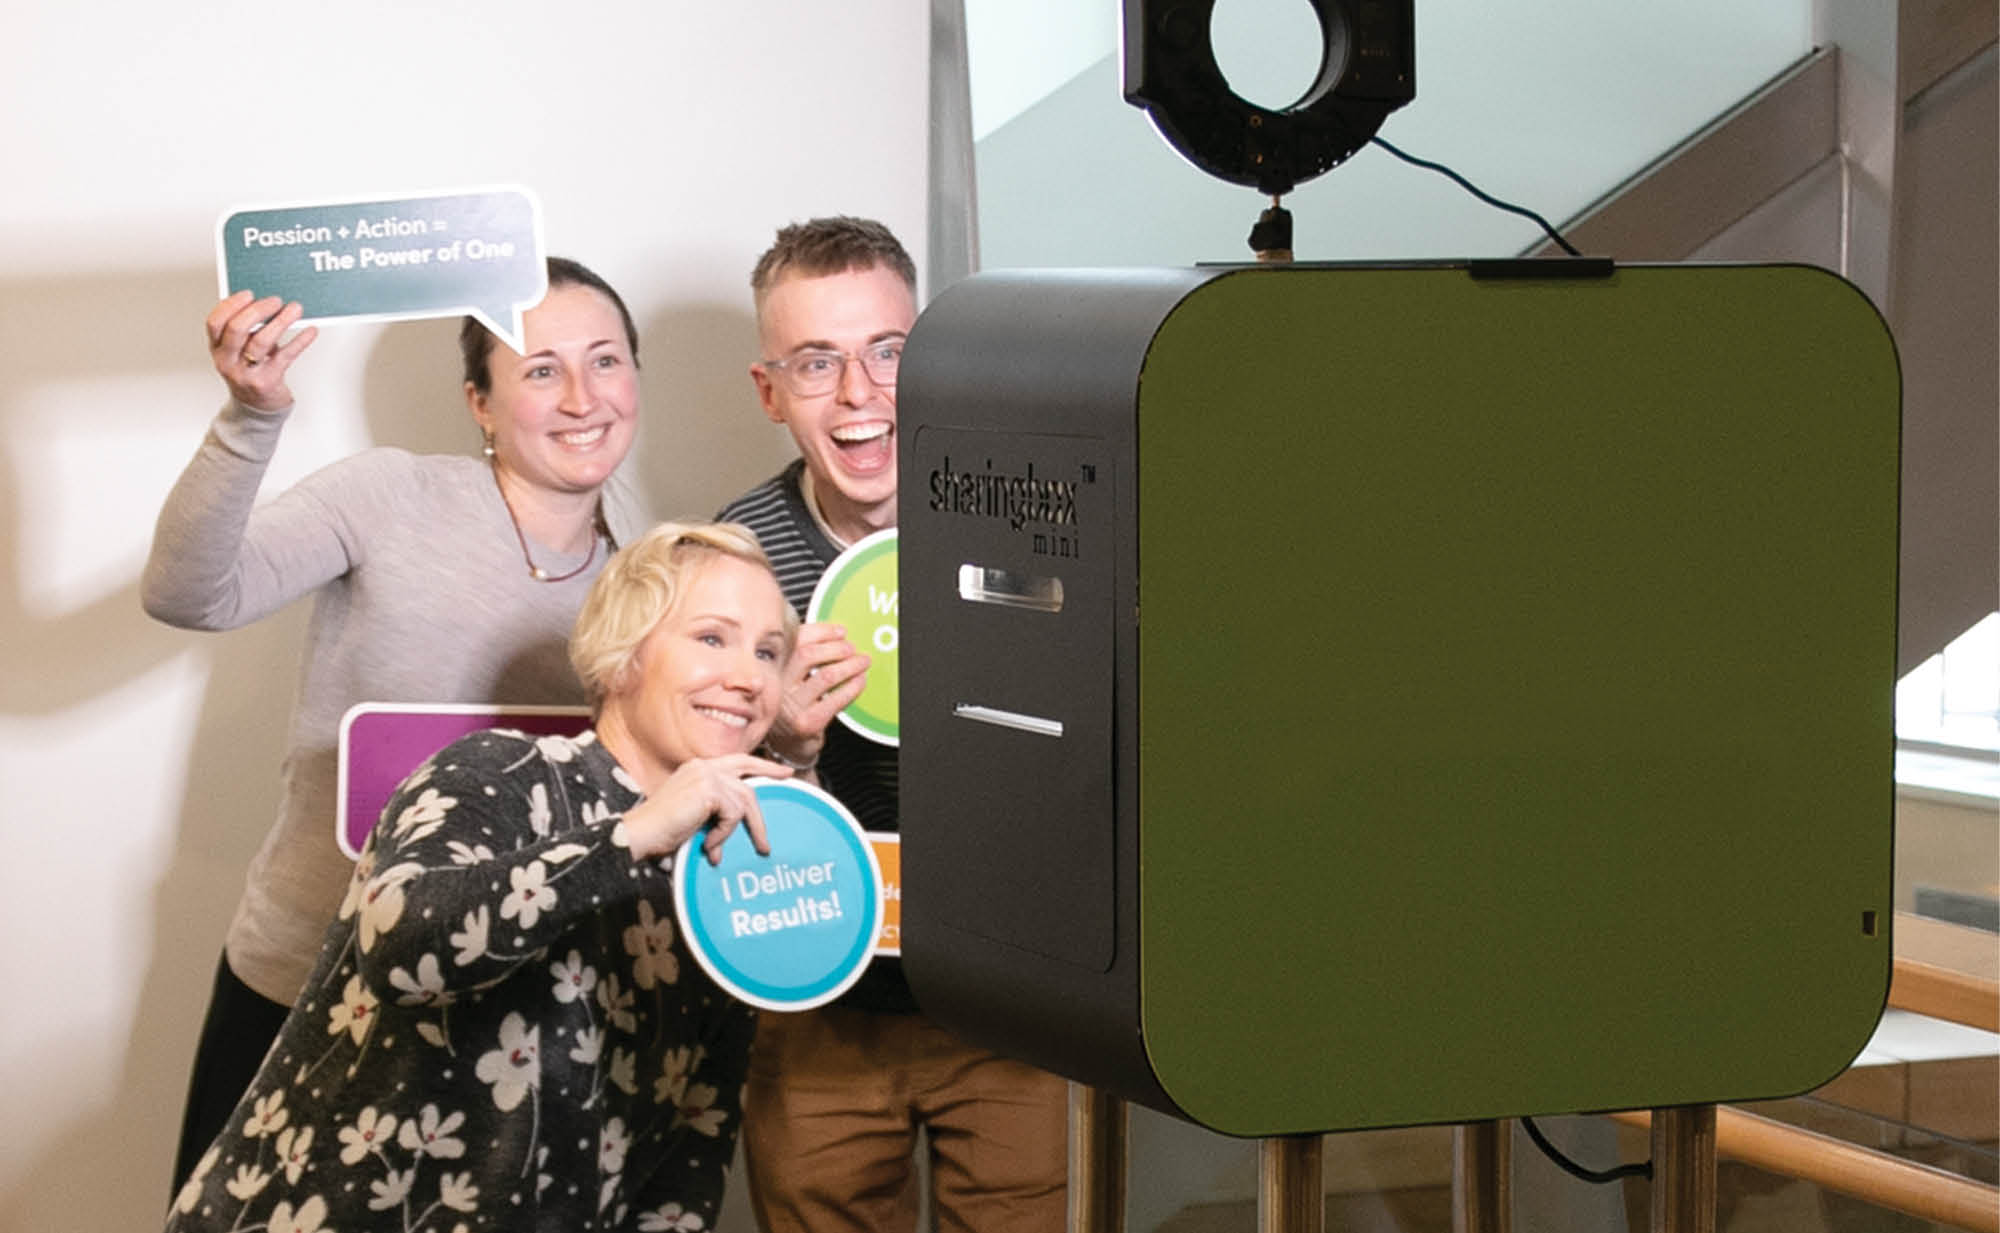 employees participating in a photo booth